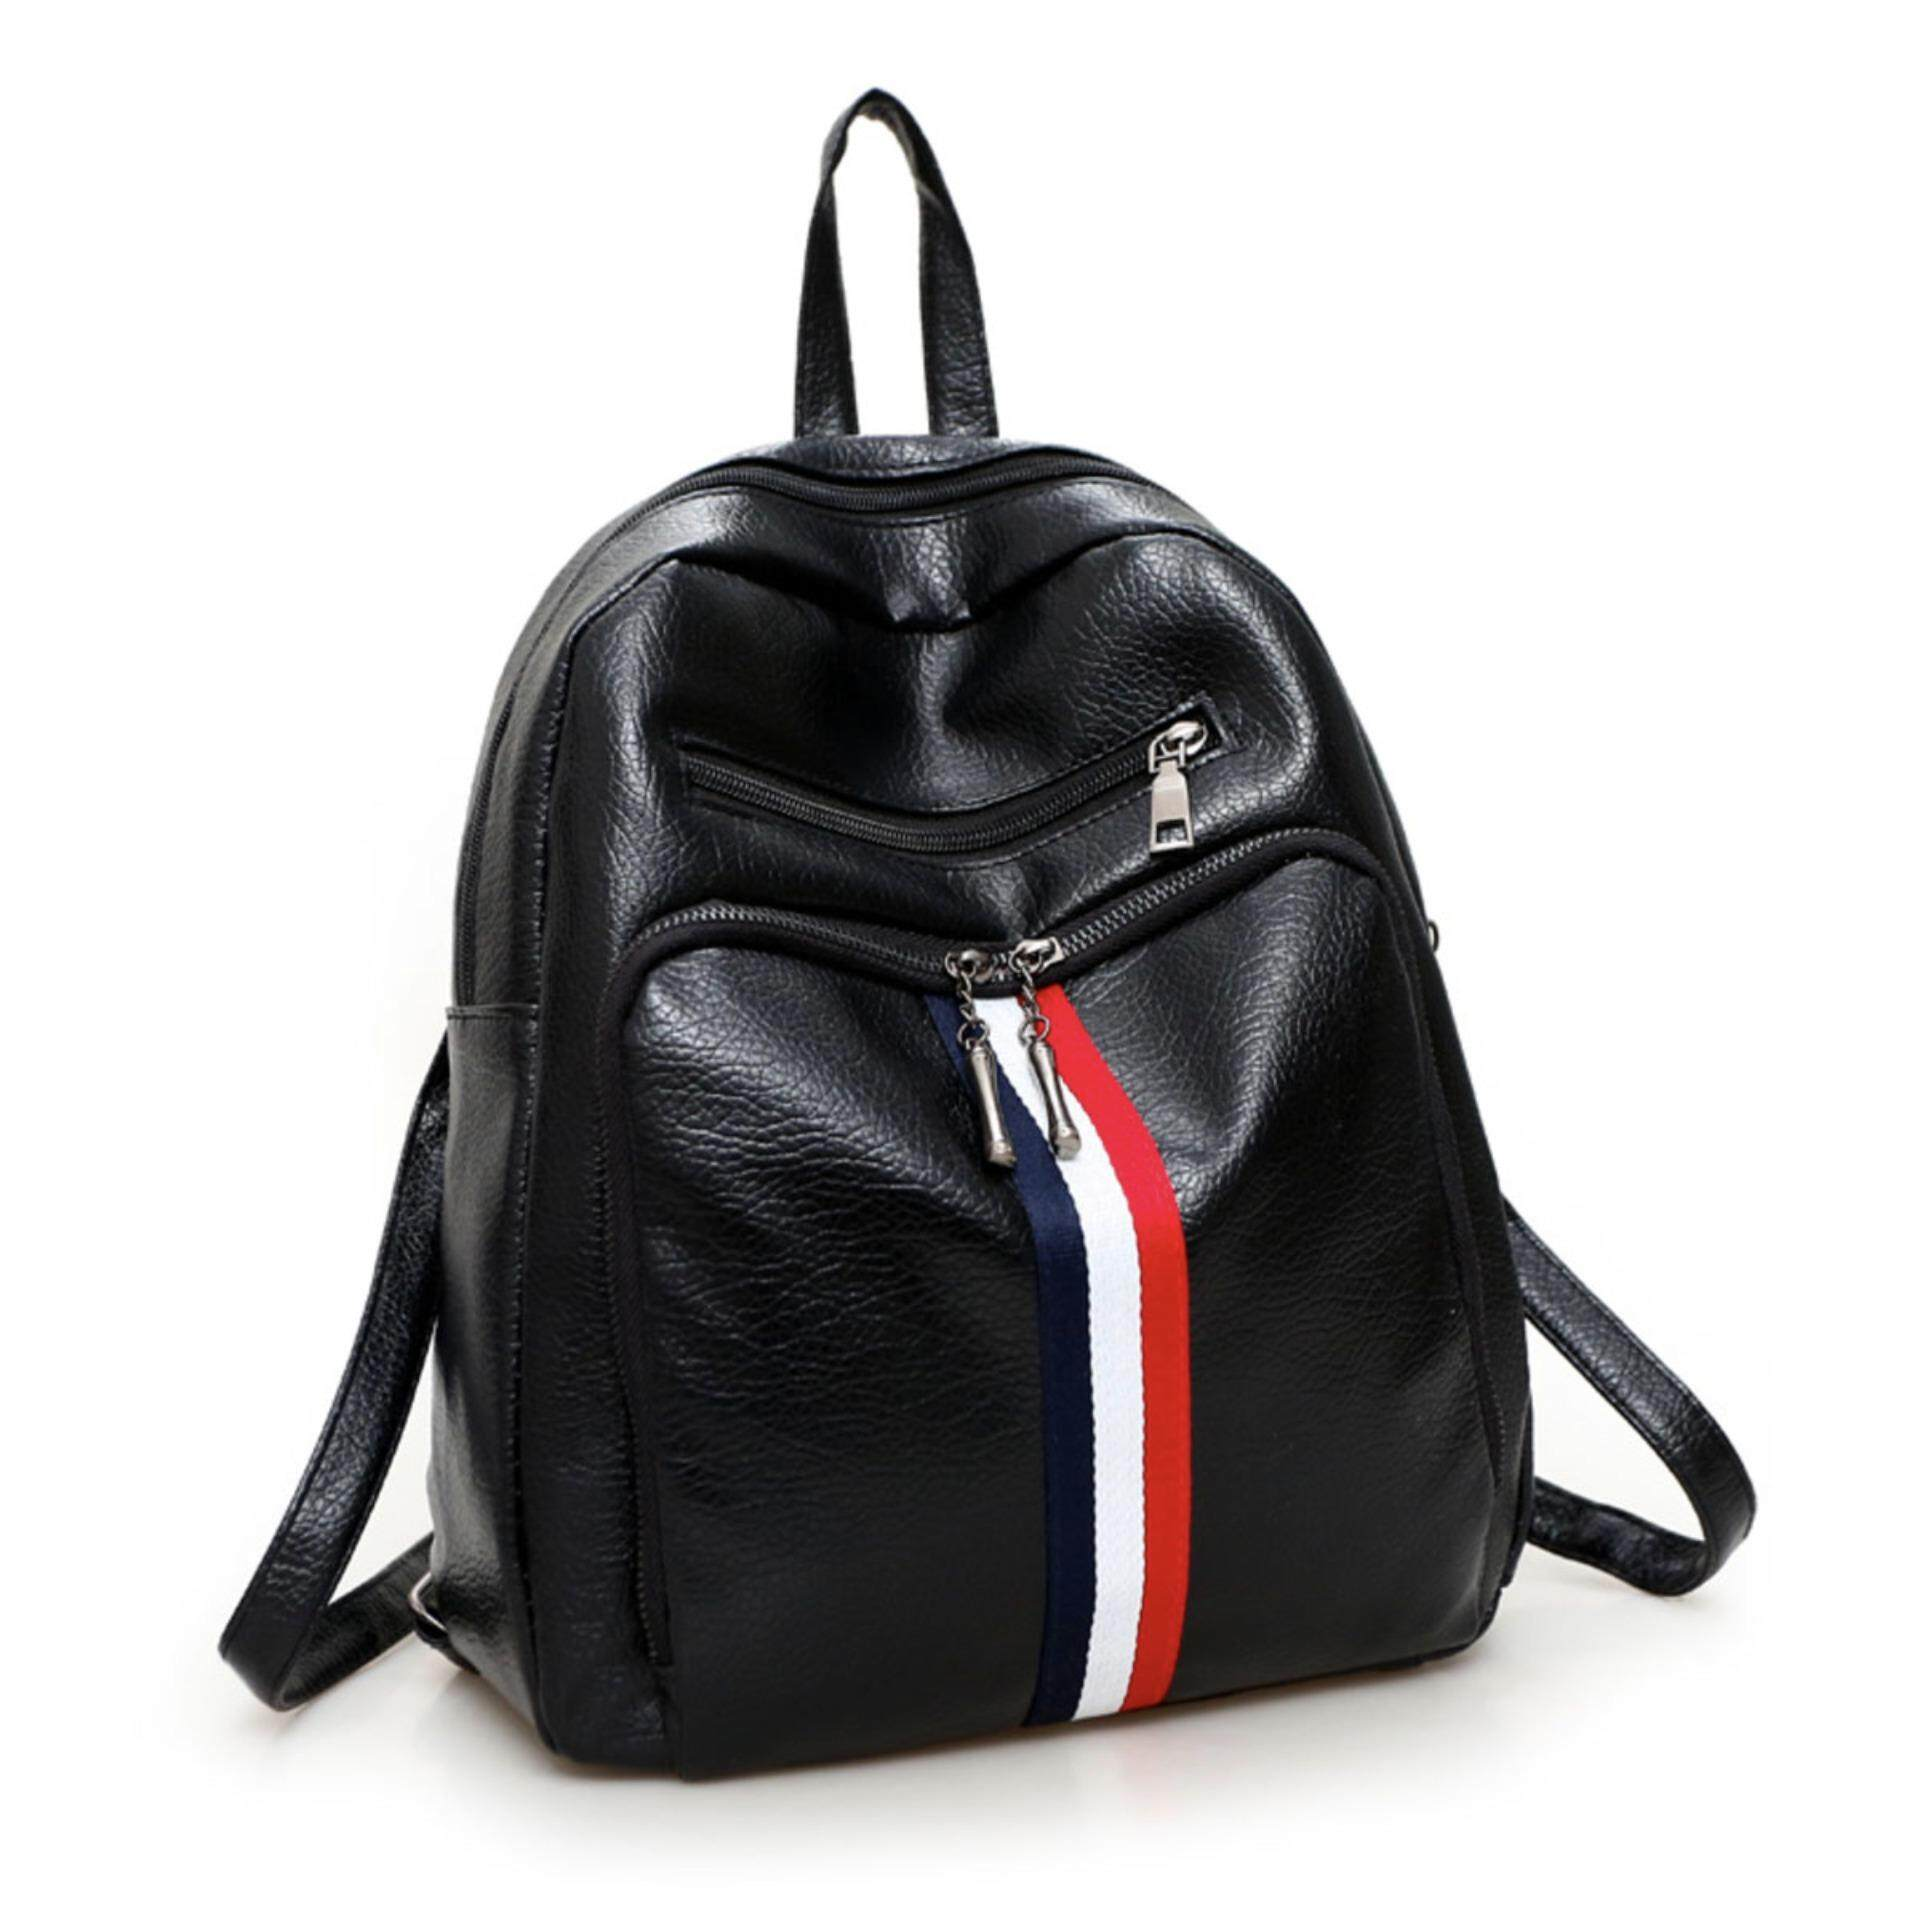 OOTD28 BP002 Korean Backpack Colour Striped Leather Travel Bag Sporty Shoulder Bag